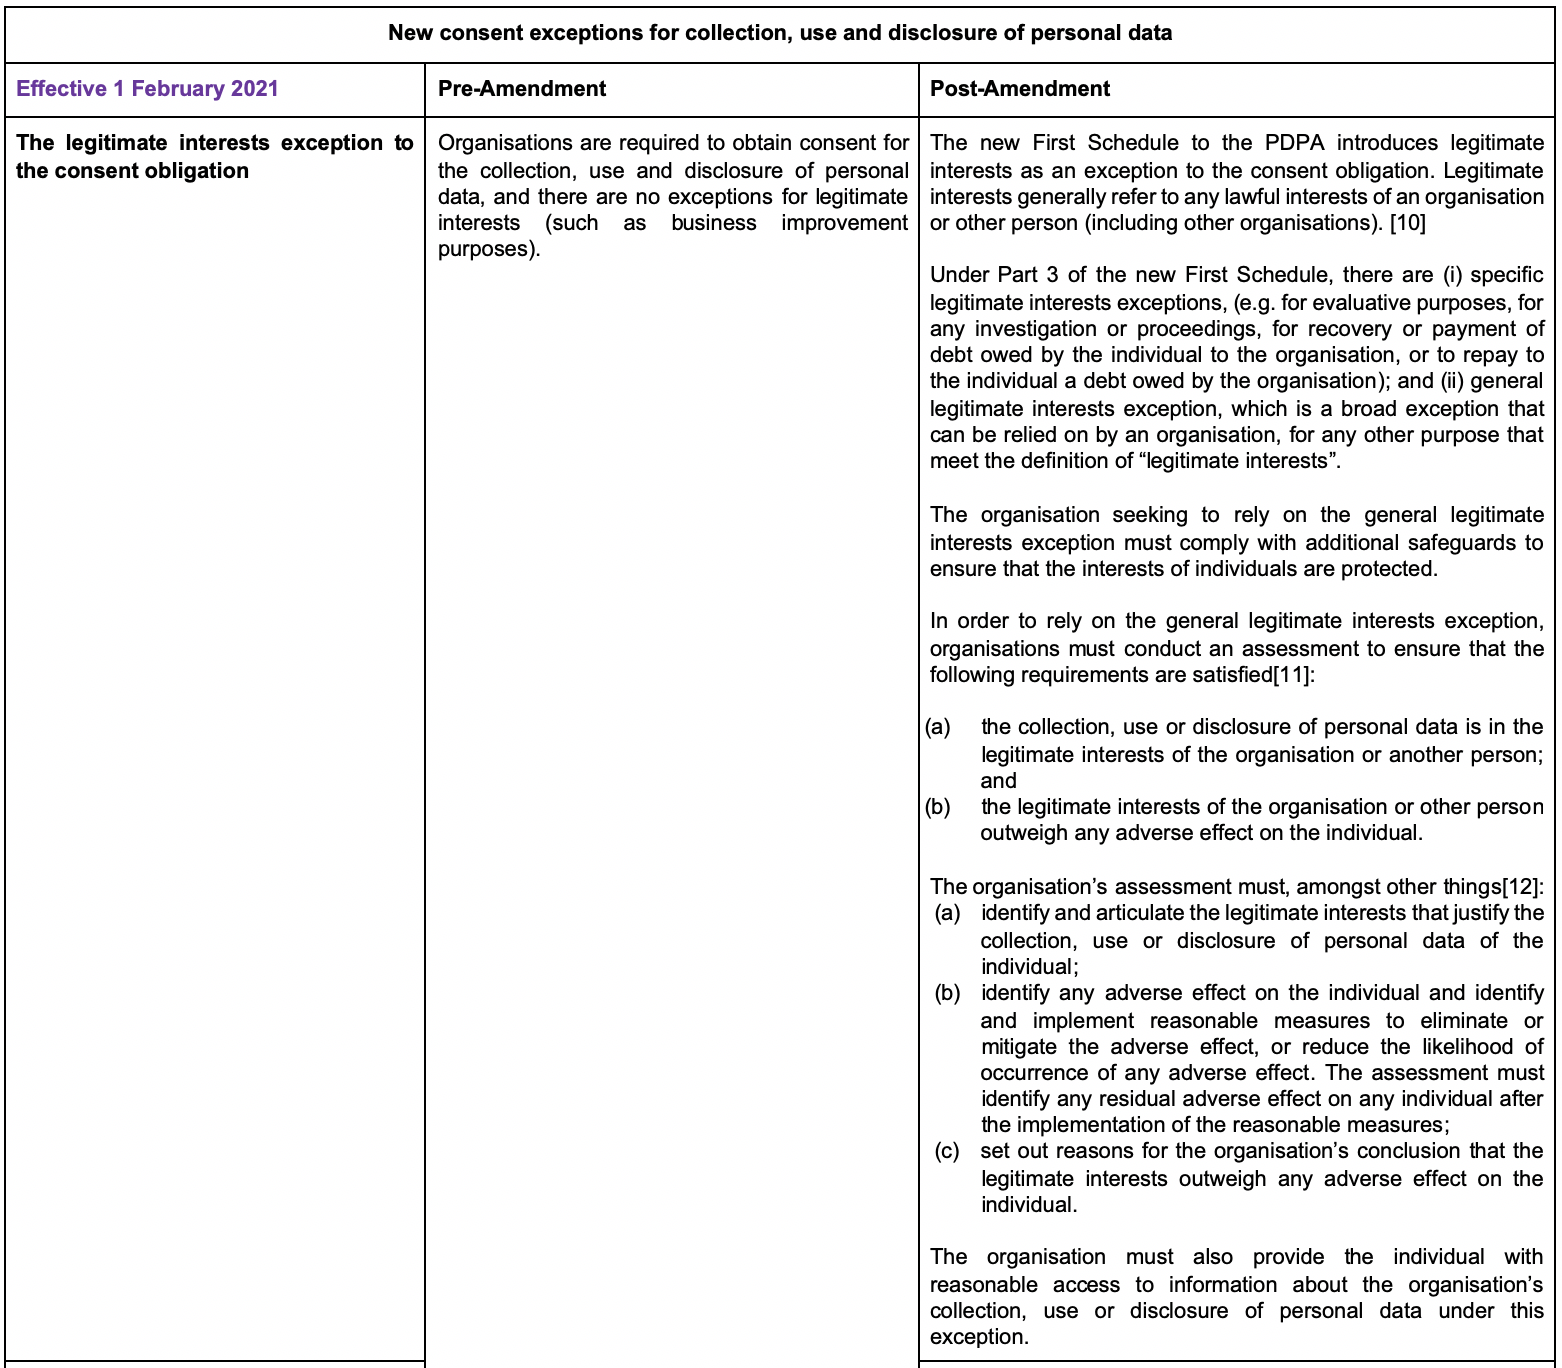 New consent exceptions for collection, use and disclosure of personal data part 1(1)